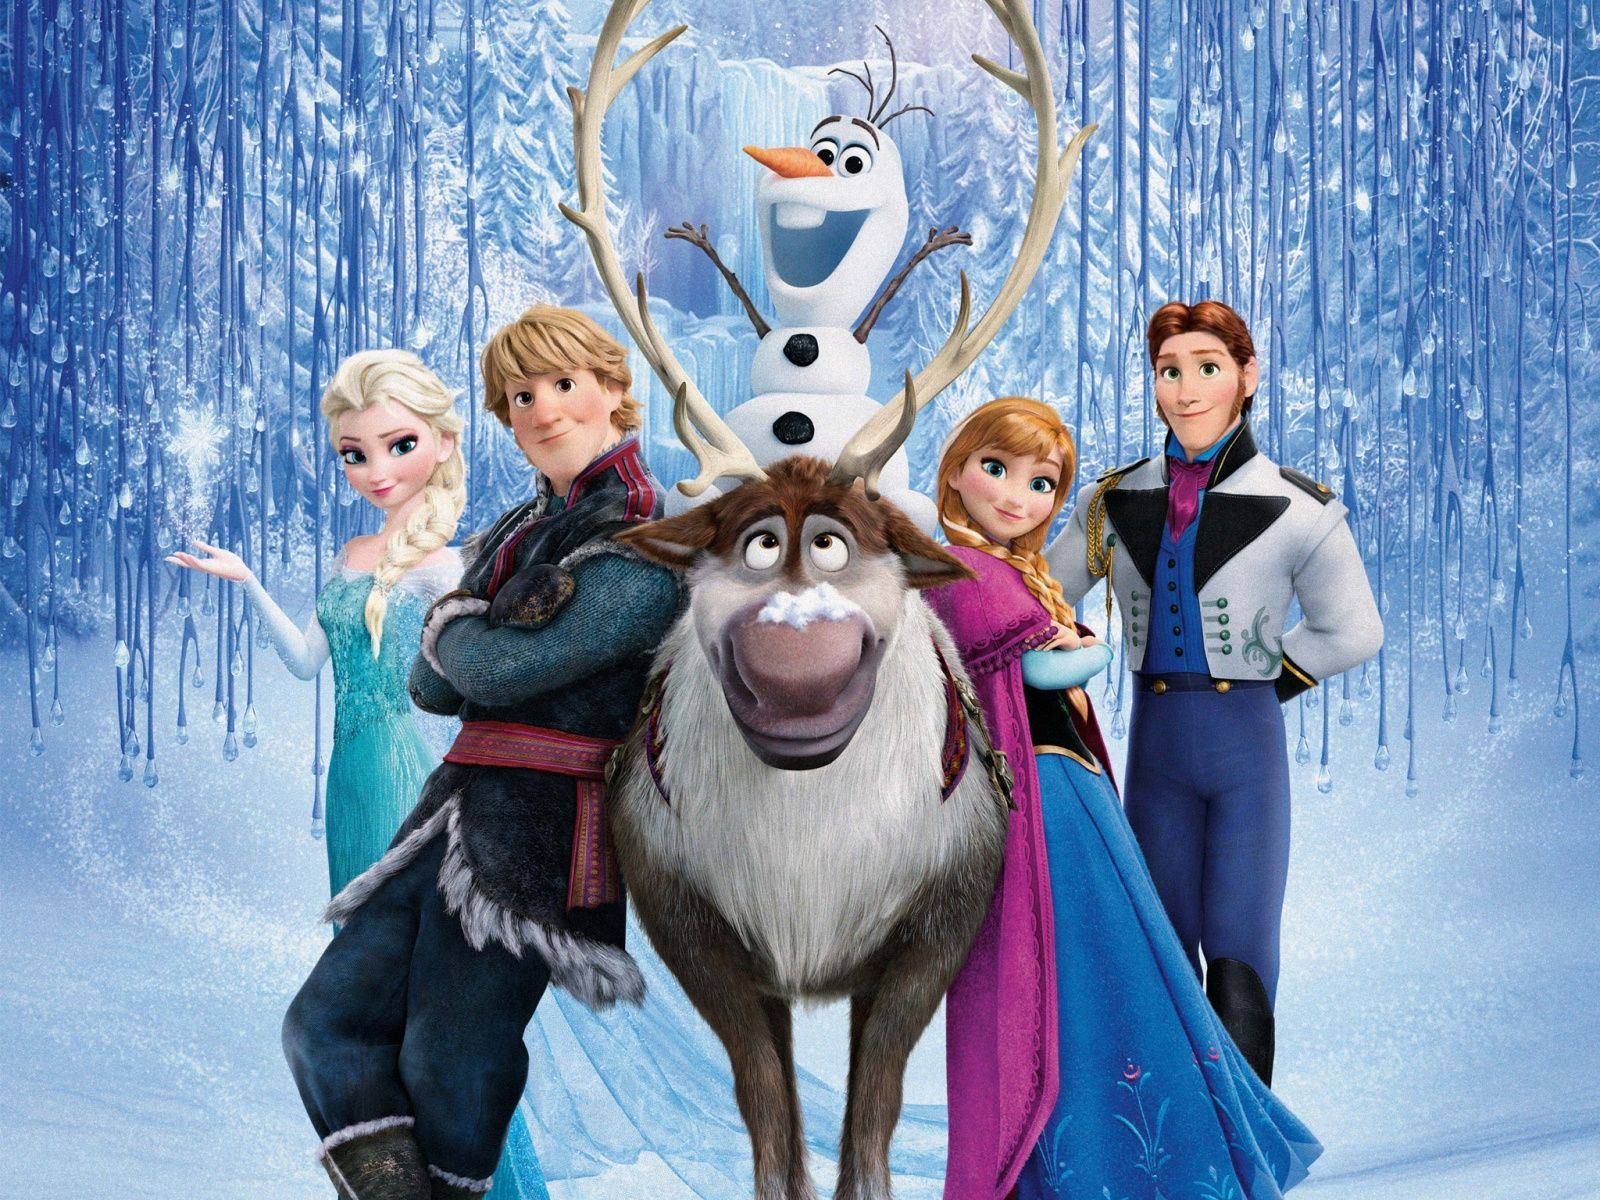 Free download High Resolution Disney Frozen Movie HD